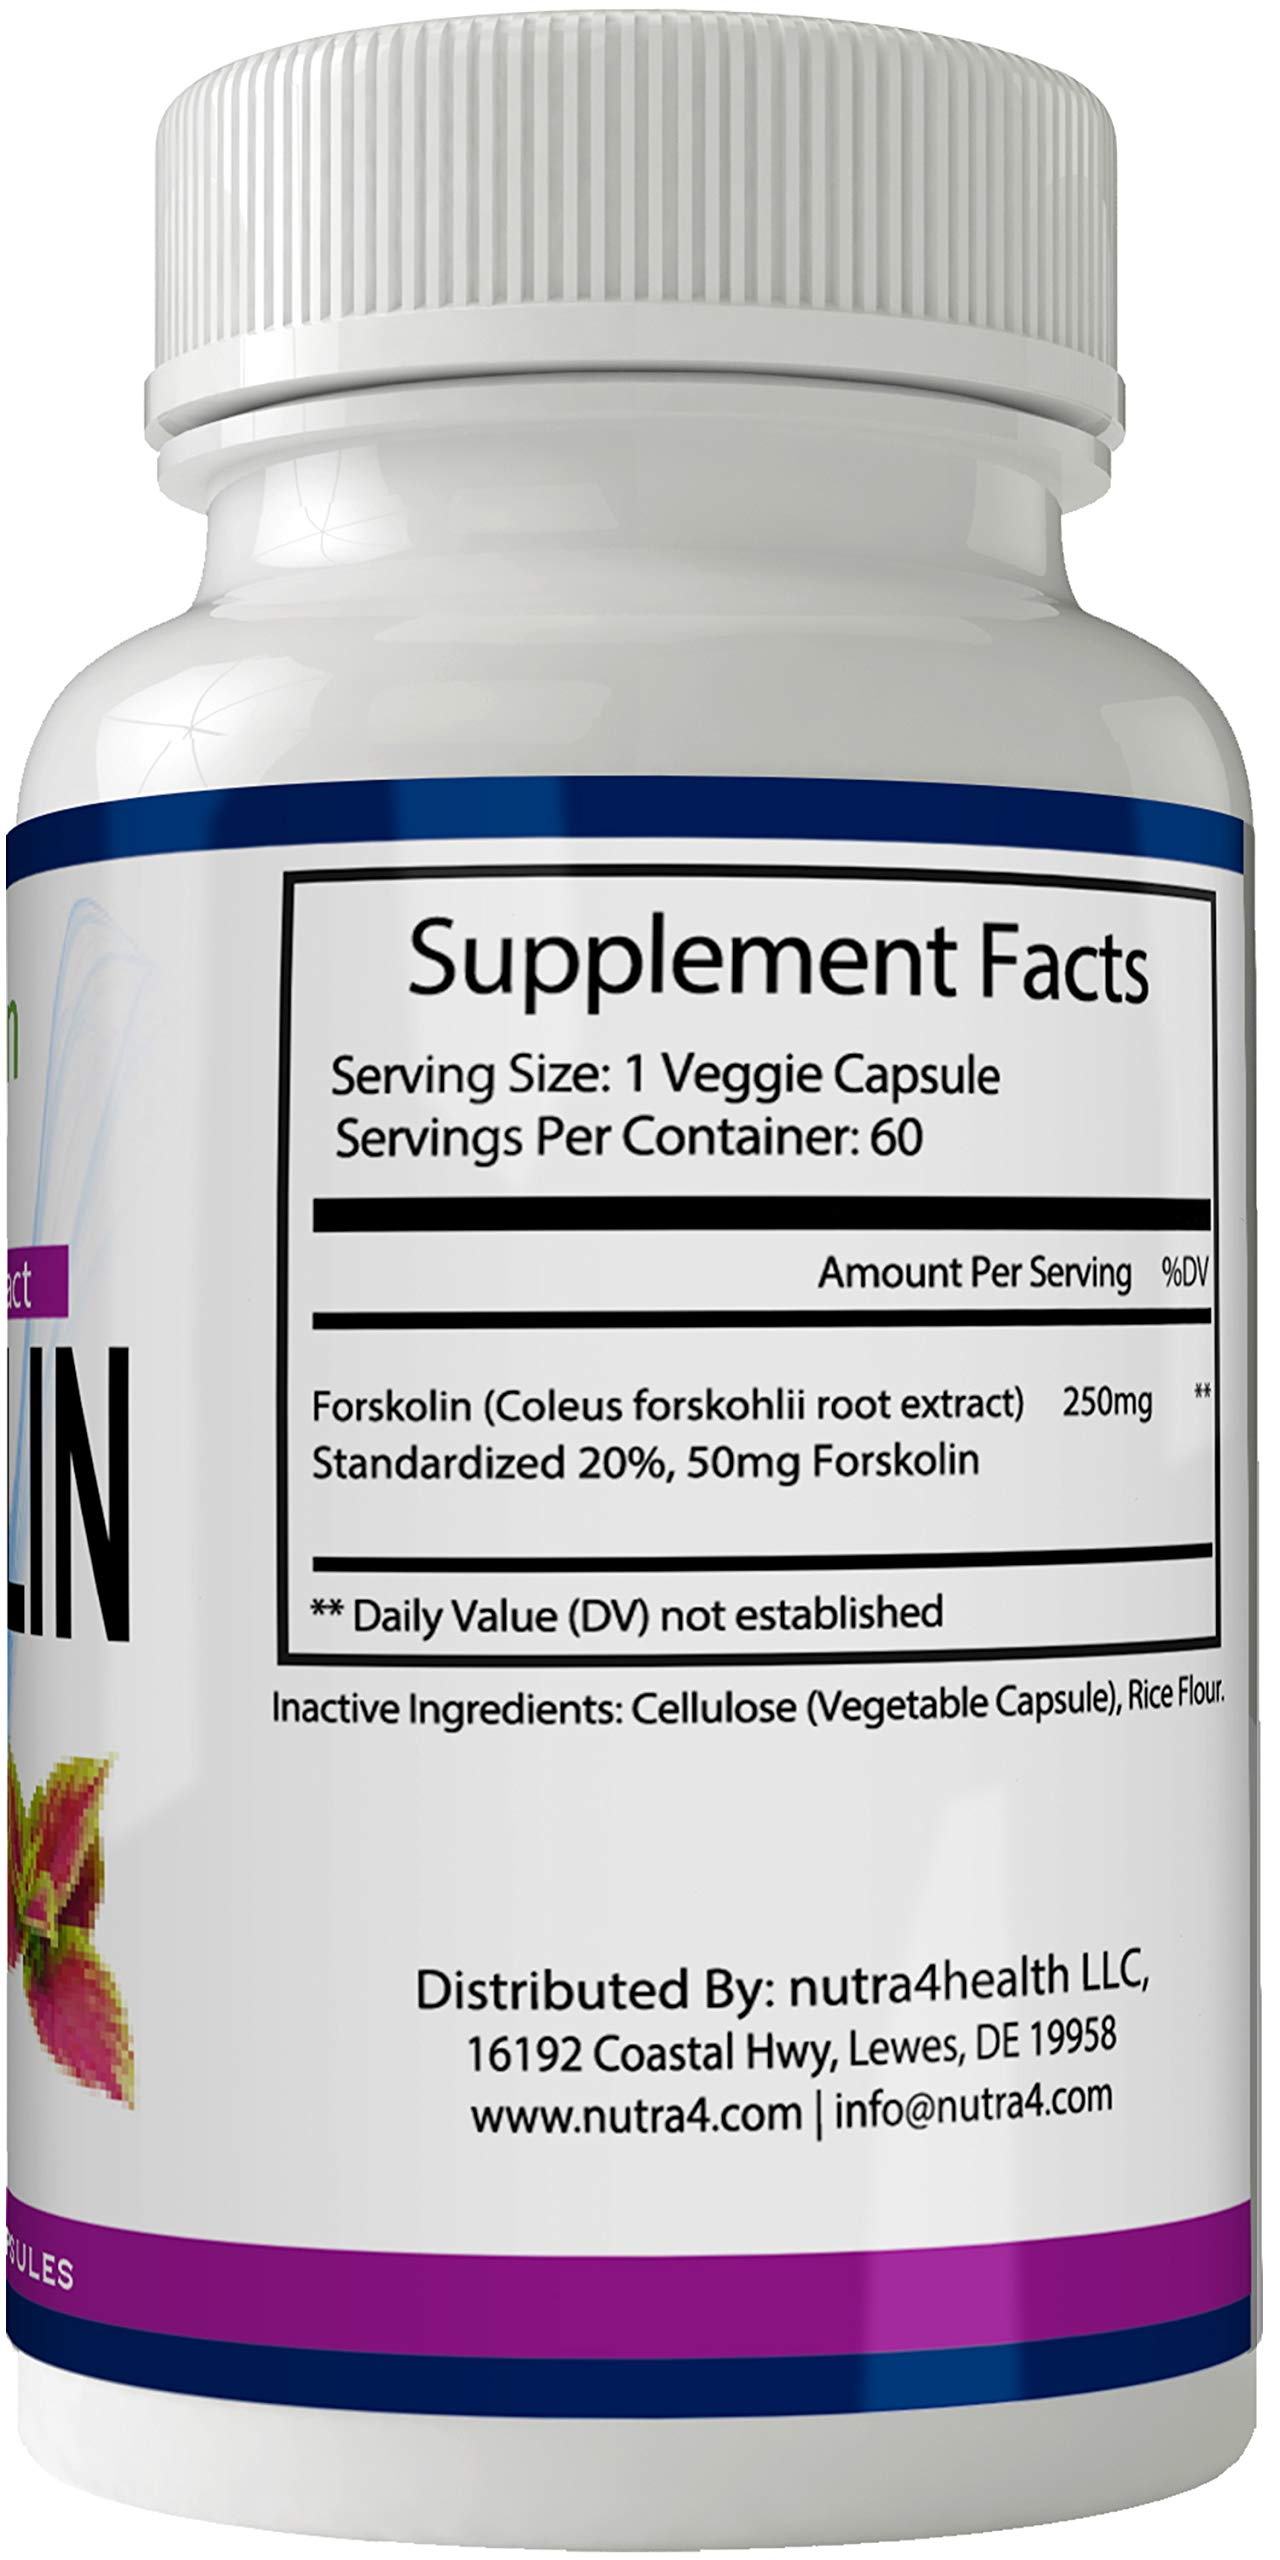 Retro Lean Forskolin for Weight Loss Pills Tablets Supplement - Capsules with Natural High Quality Pure Forskolin Extract Diet Pills, Boost Metabolism and Digestive Function by nutra4health LLC (Image #2)